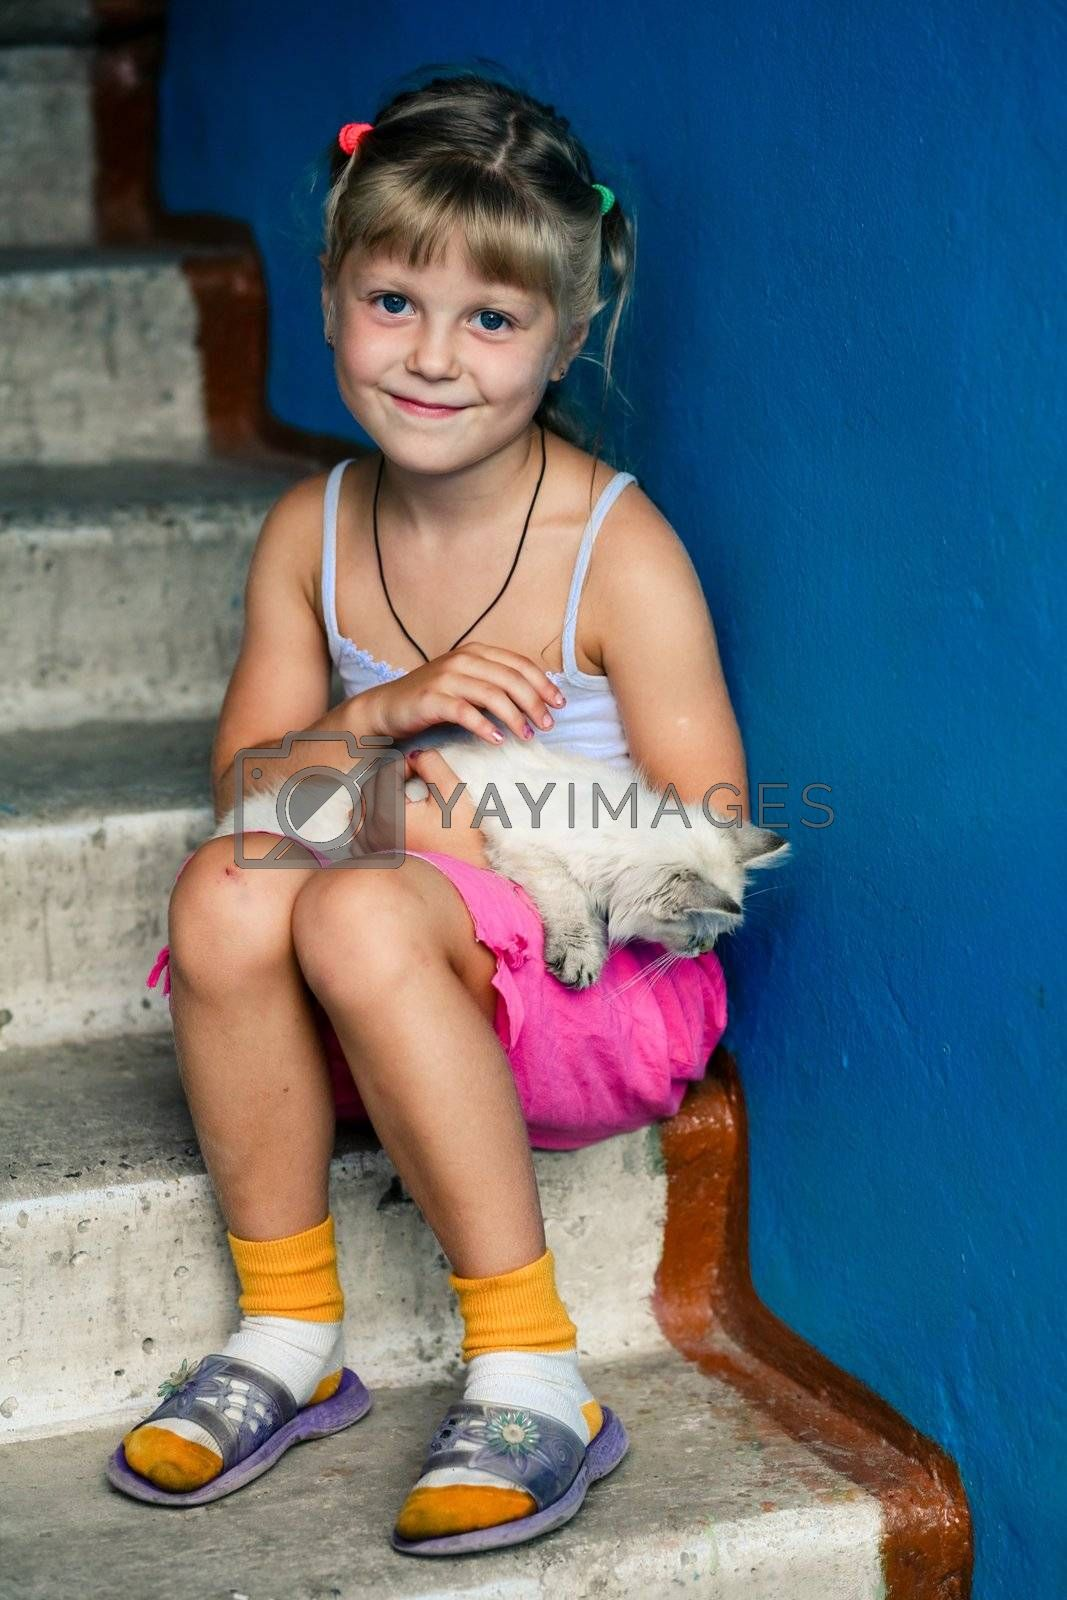 An image of smiling girl with a kitten in her arms